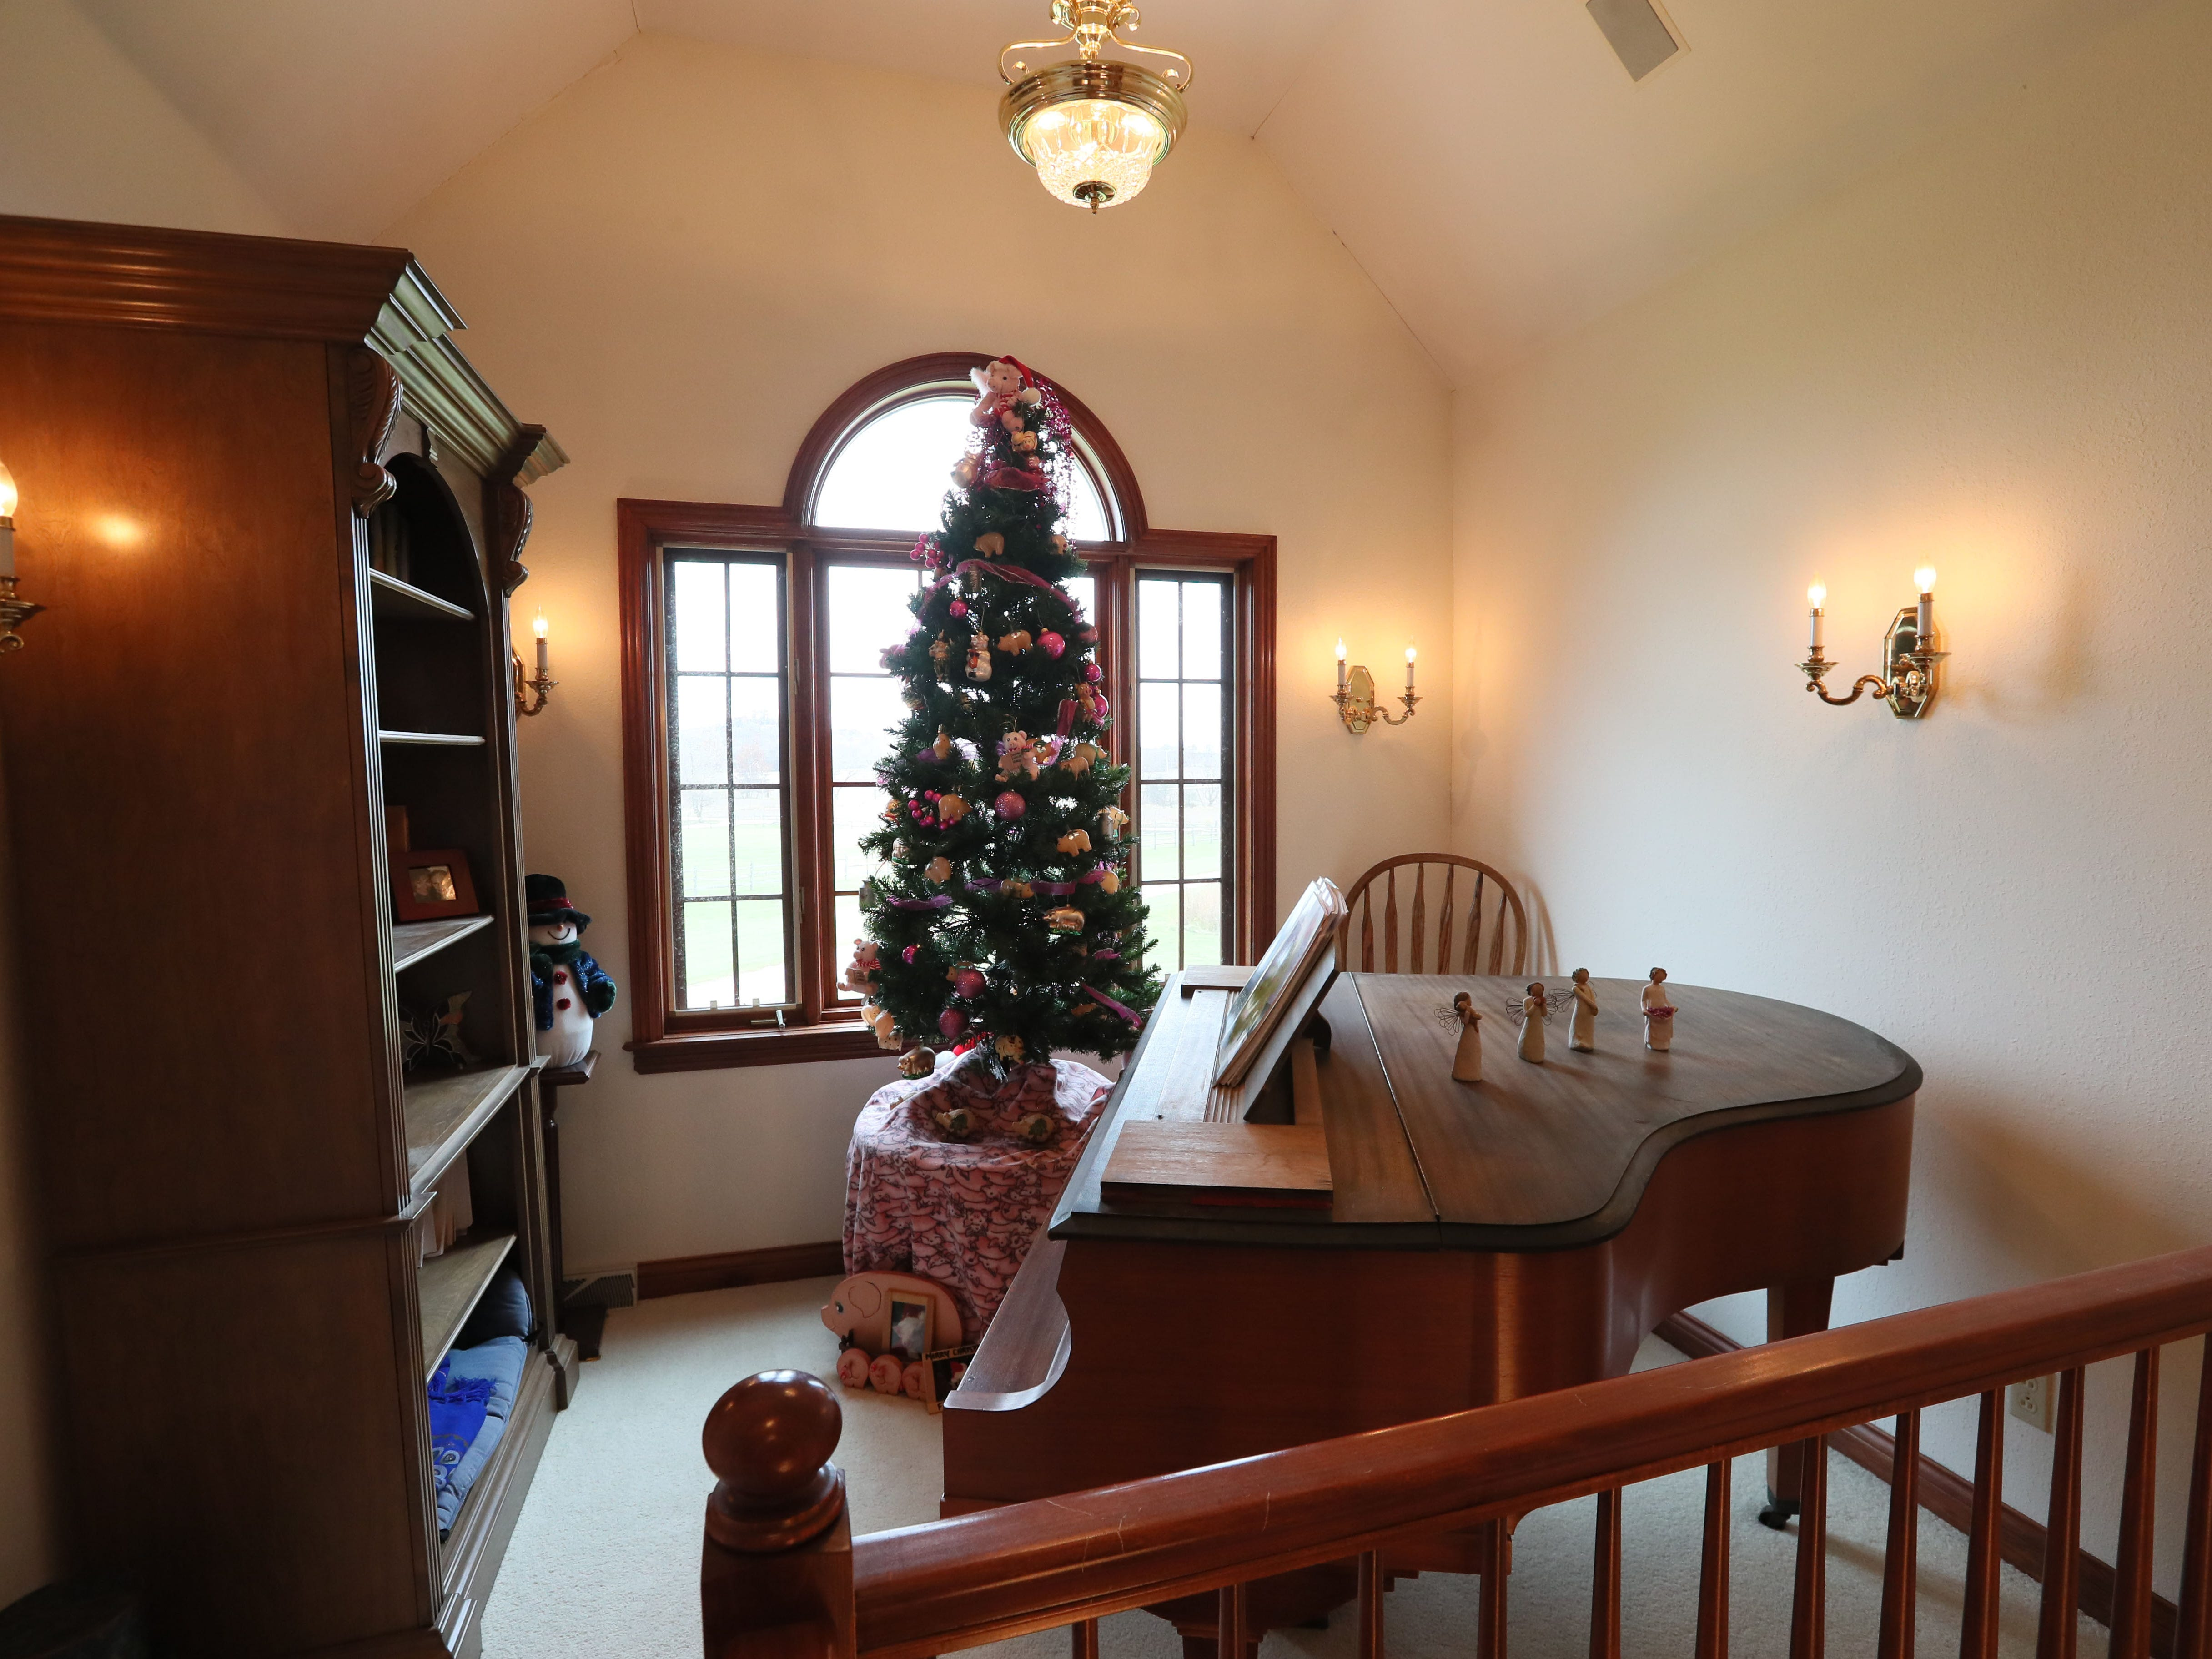 An area at the top of the stairs features a grand piano and a tabletop Christmas tree.